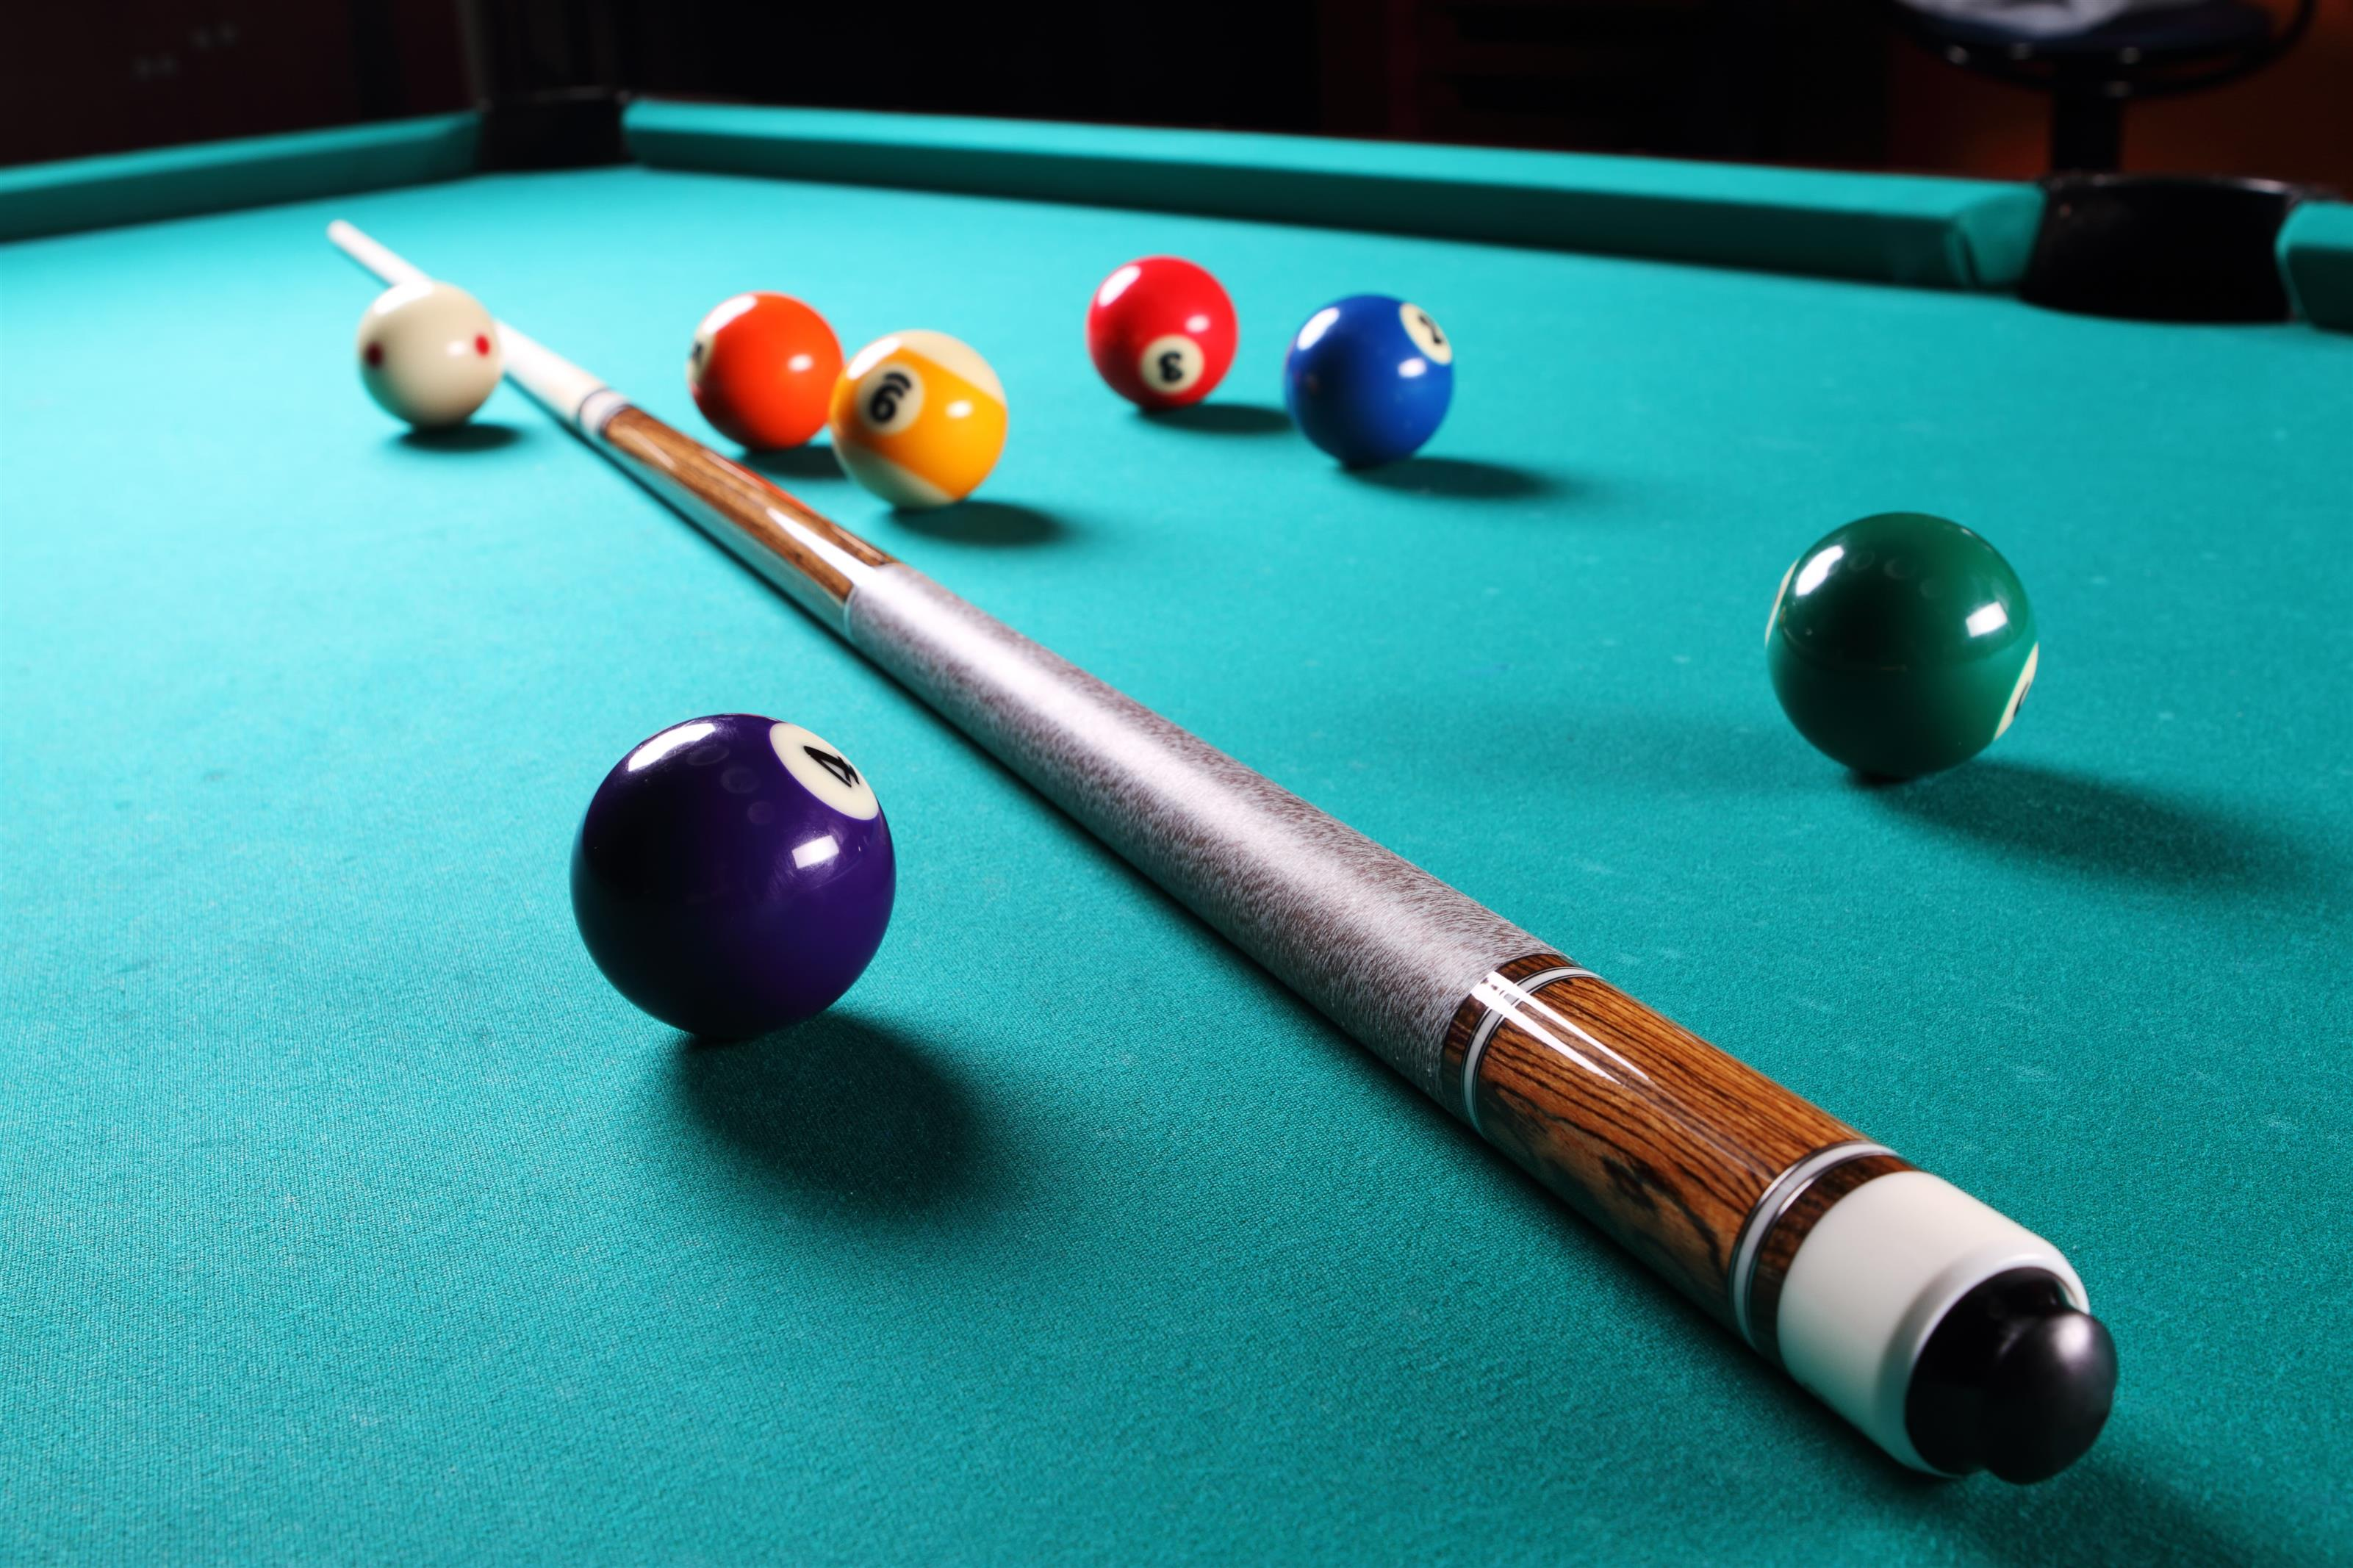 Billiard stick laying on billiard table surrounded by scattered balls